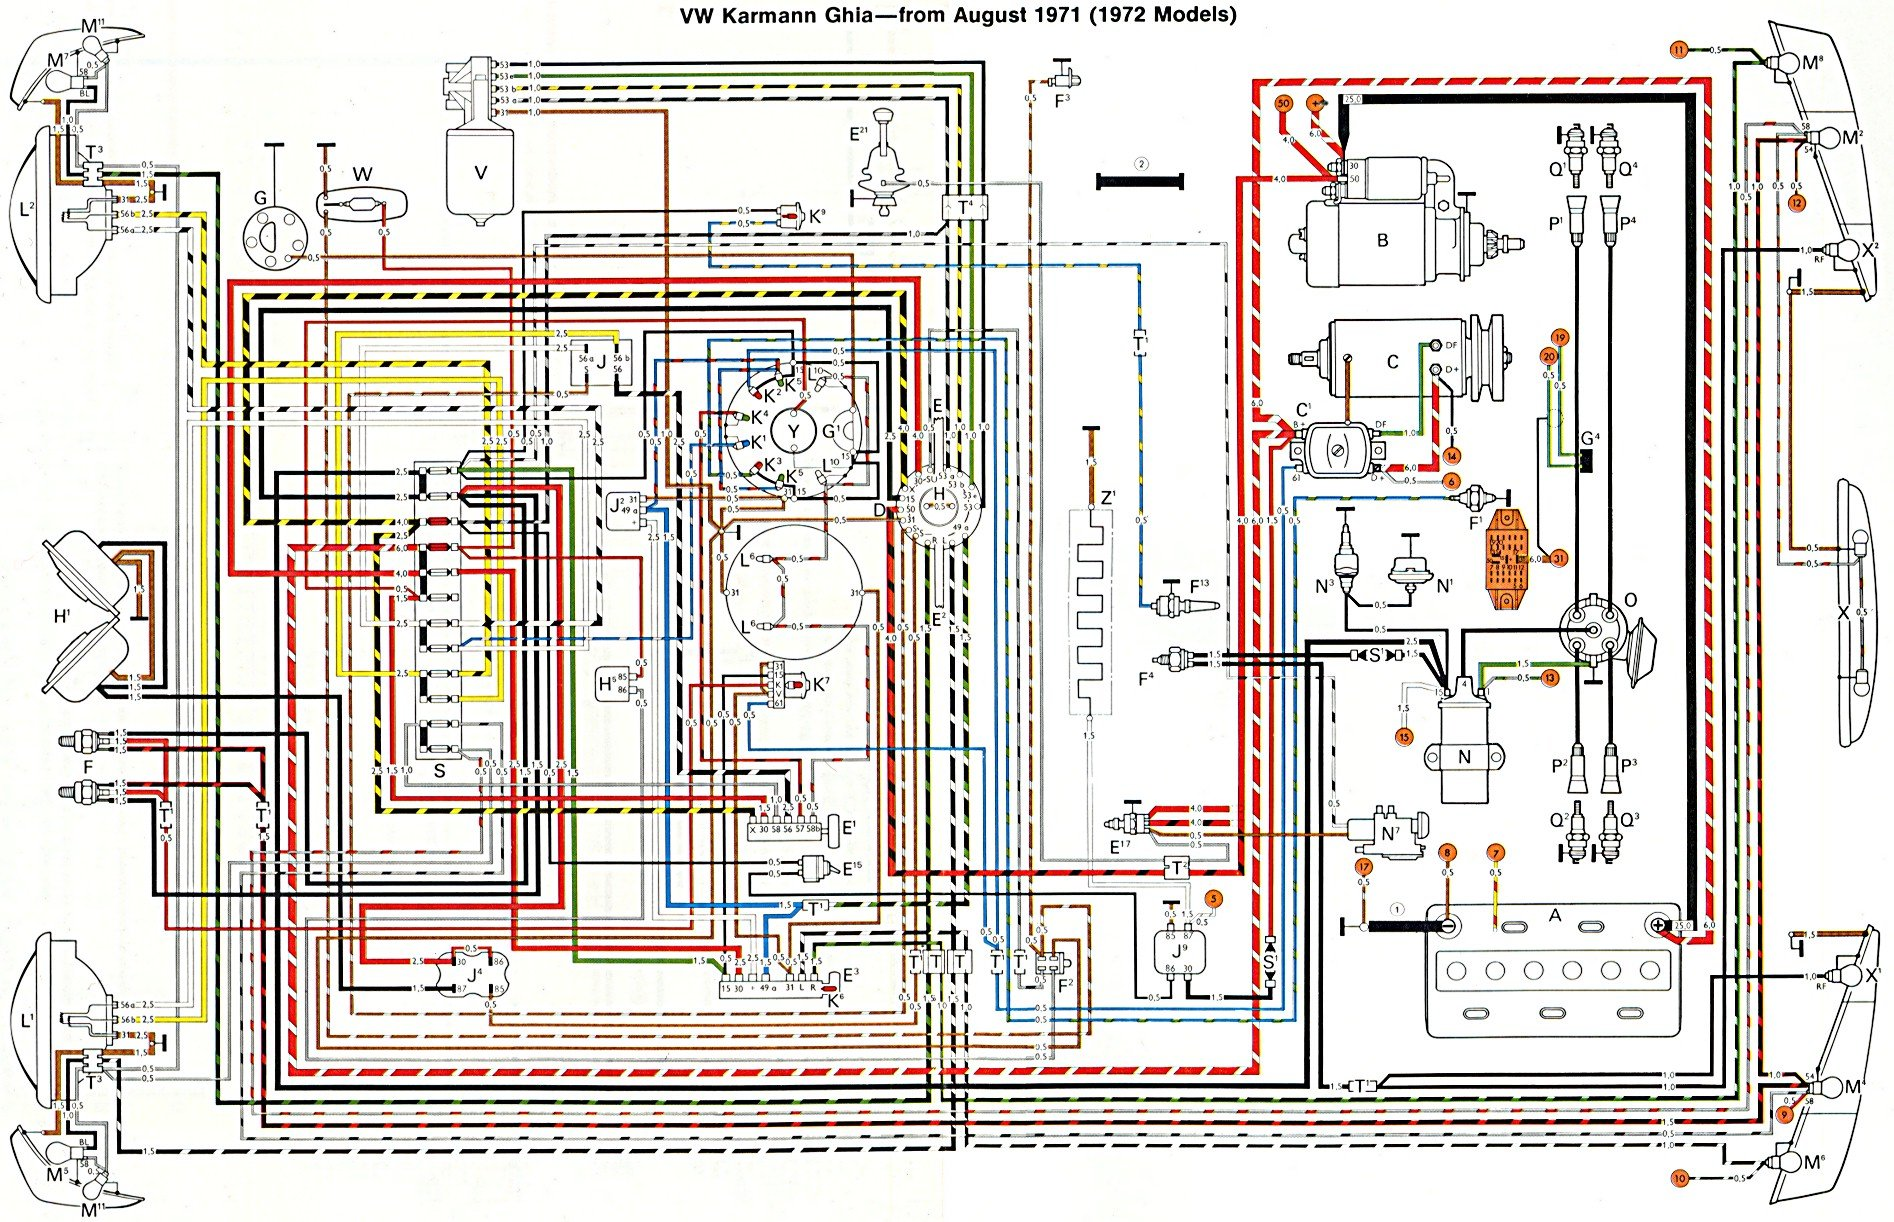 72ghia thesamba com karmann ghia wiring diagrams karmann ghia wiring harness at n-0.co